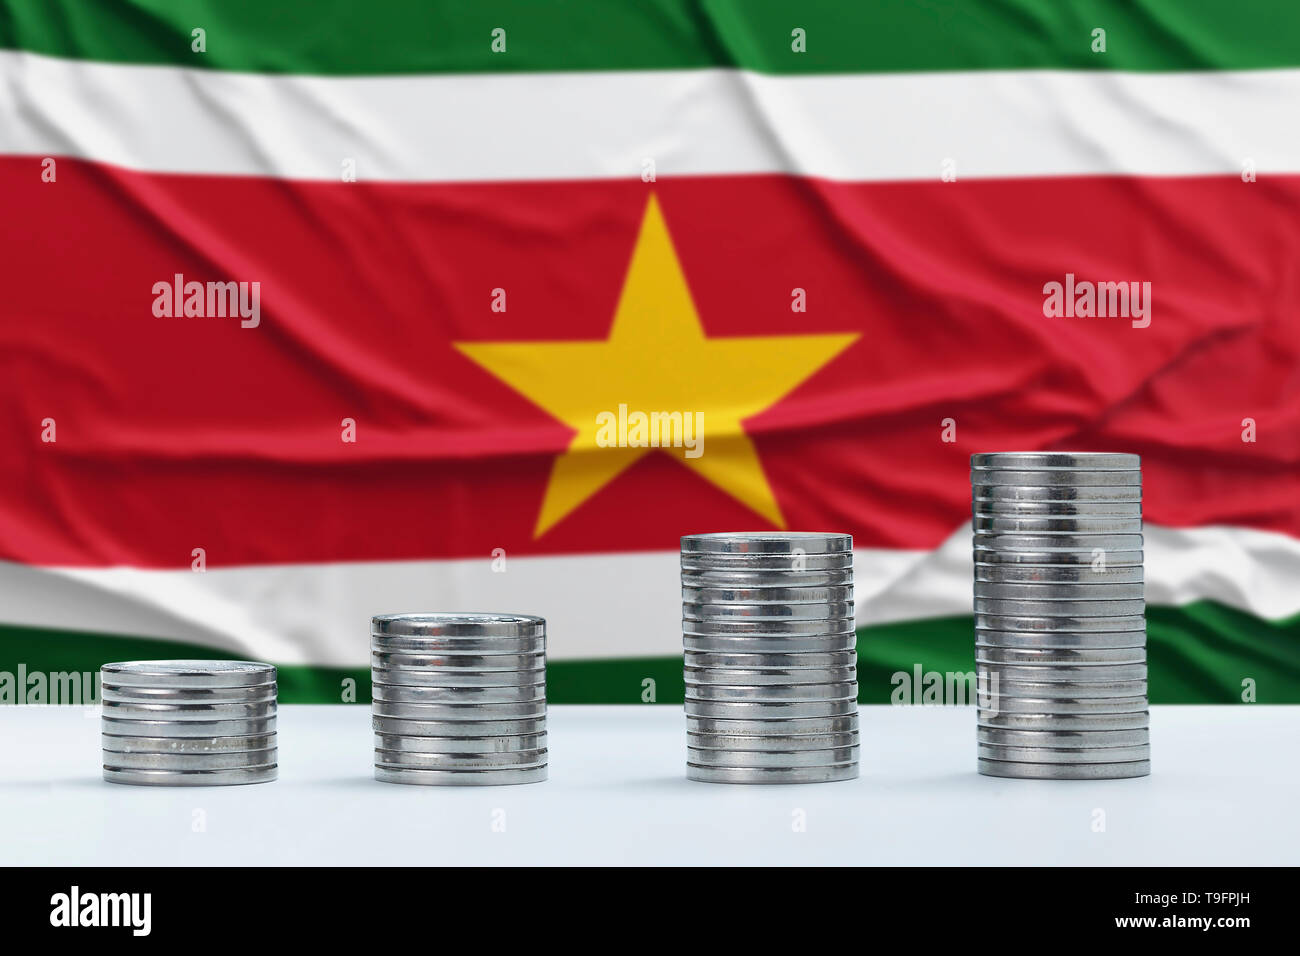 Wrinkled Suriname flag in the background with rows of coins for finance and business concept. Saving money. - Stock Image